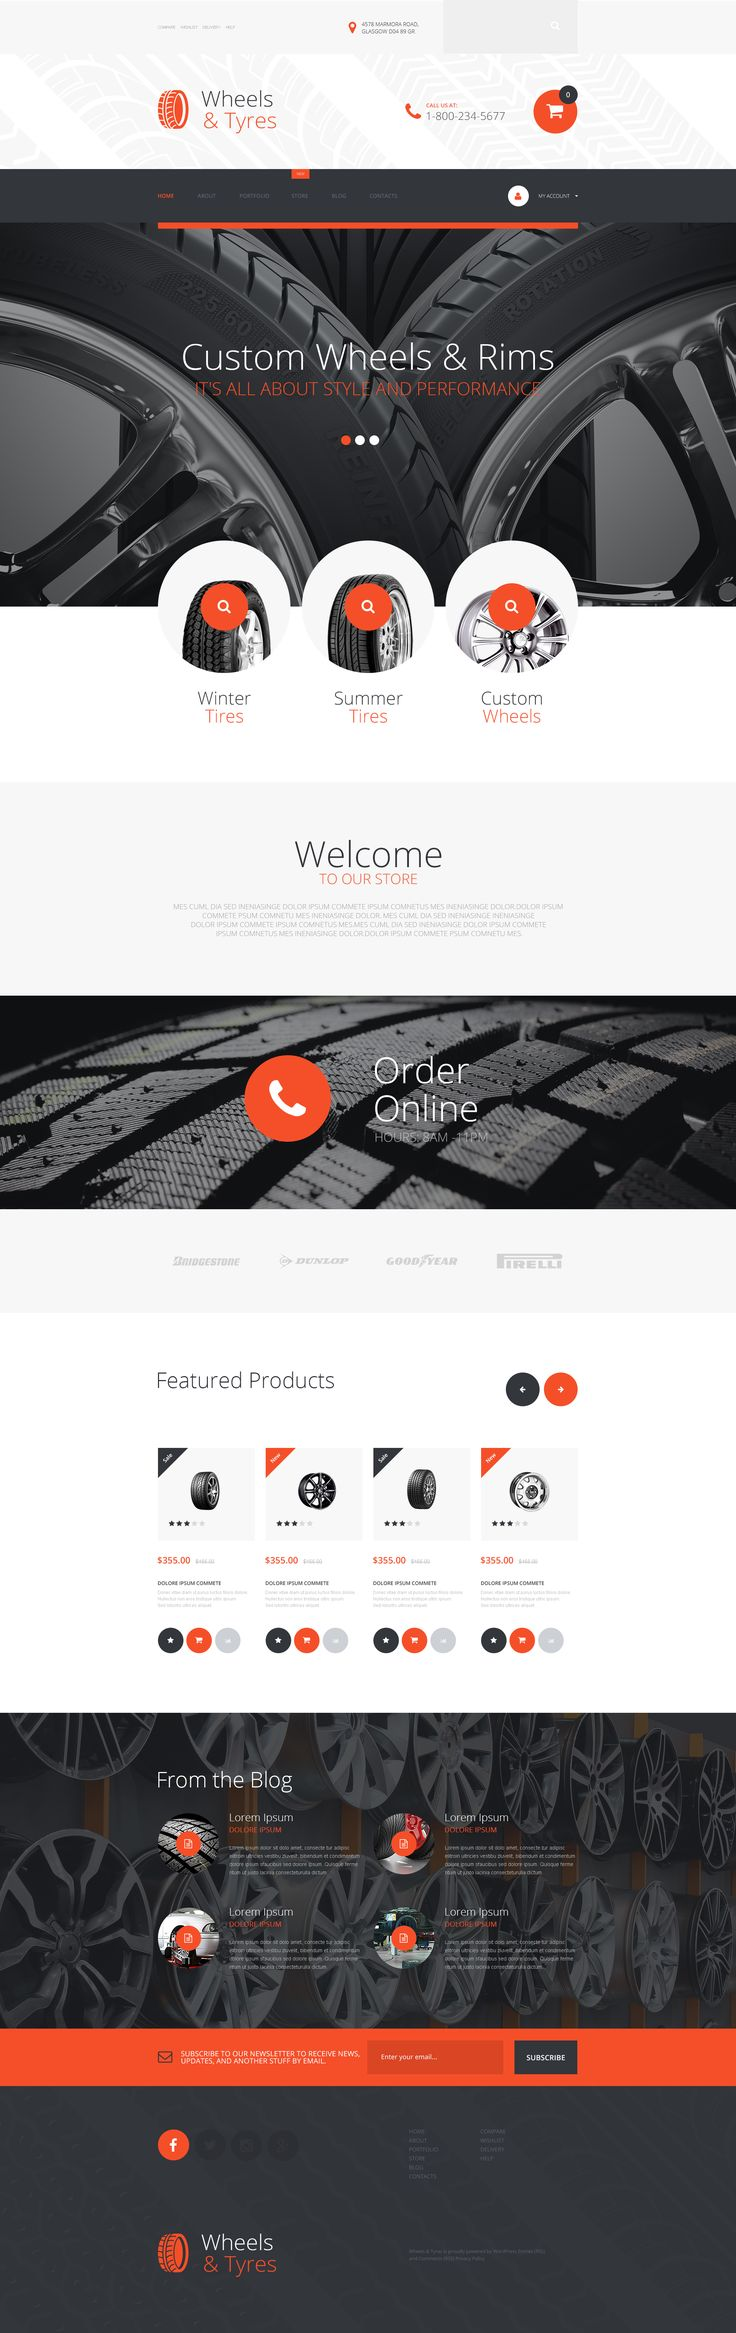 Coming soon: Wheels and Tyres Woocommerce Theme. Check Out Its Release: http://www.templatemonster.com/?utm_source=pinterest&utm_medium=tm&utm_campaign=comsoon